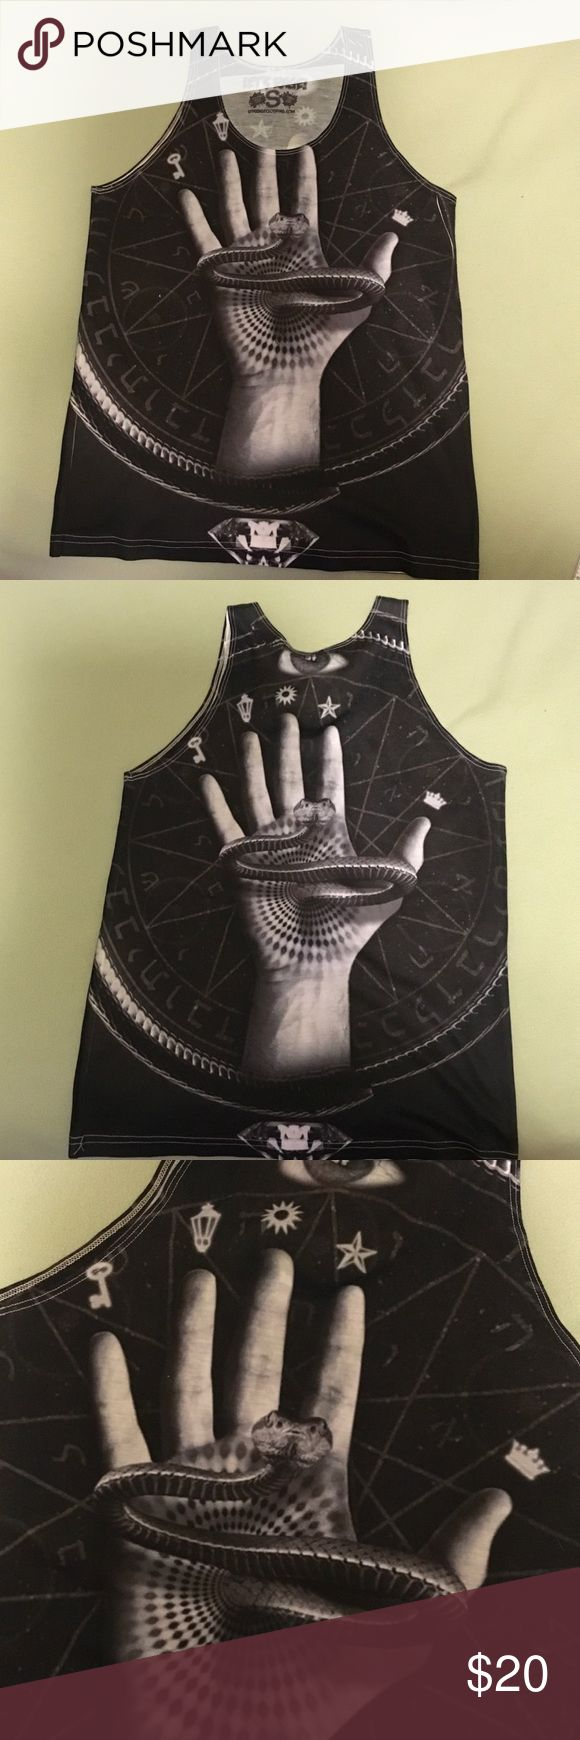 Black and white snake tank Let's Rage tank top. Size S. Never worn, Let's Rage Clothing Tops Tank Tops